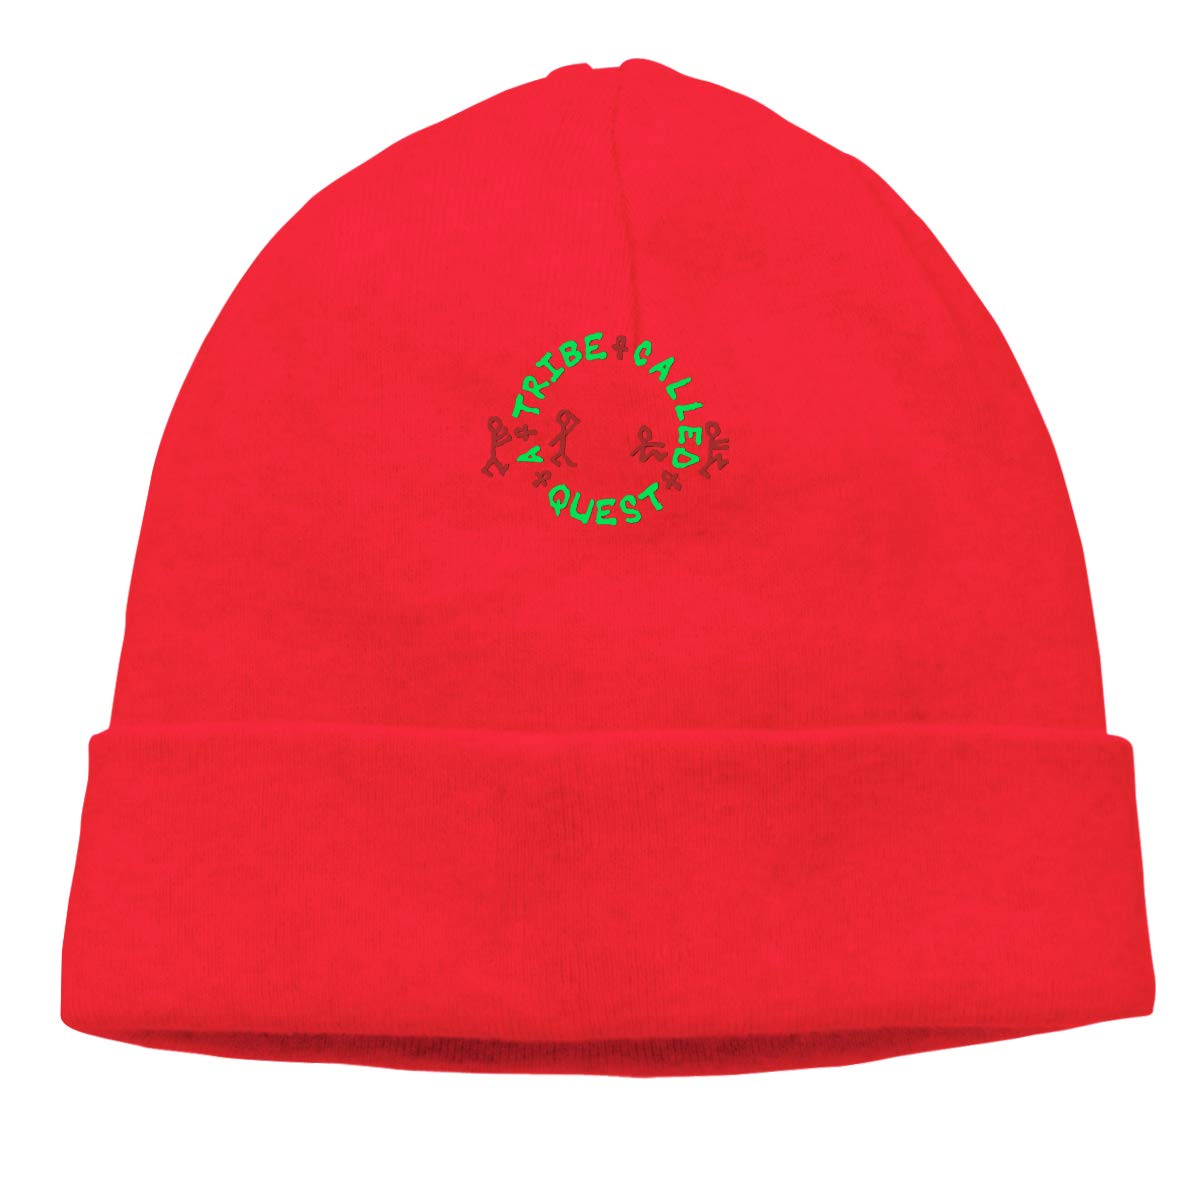 Amazon.com: A Tribe Called Quest.png Warm Cap Fashion Keep.